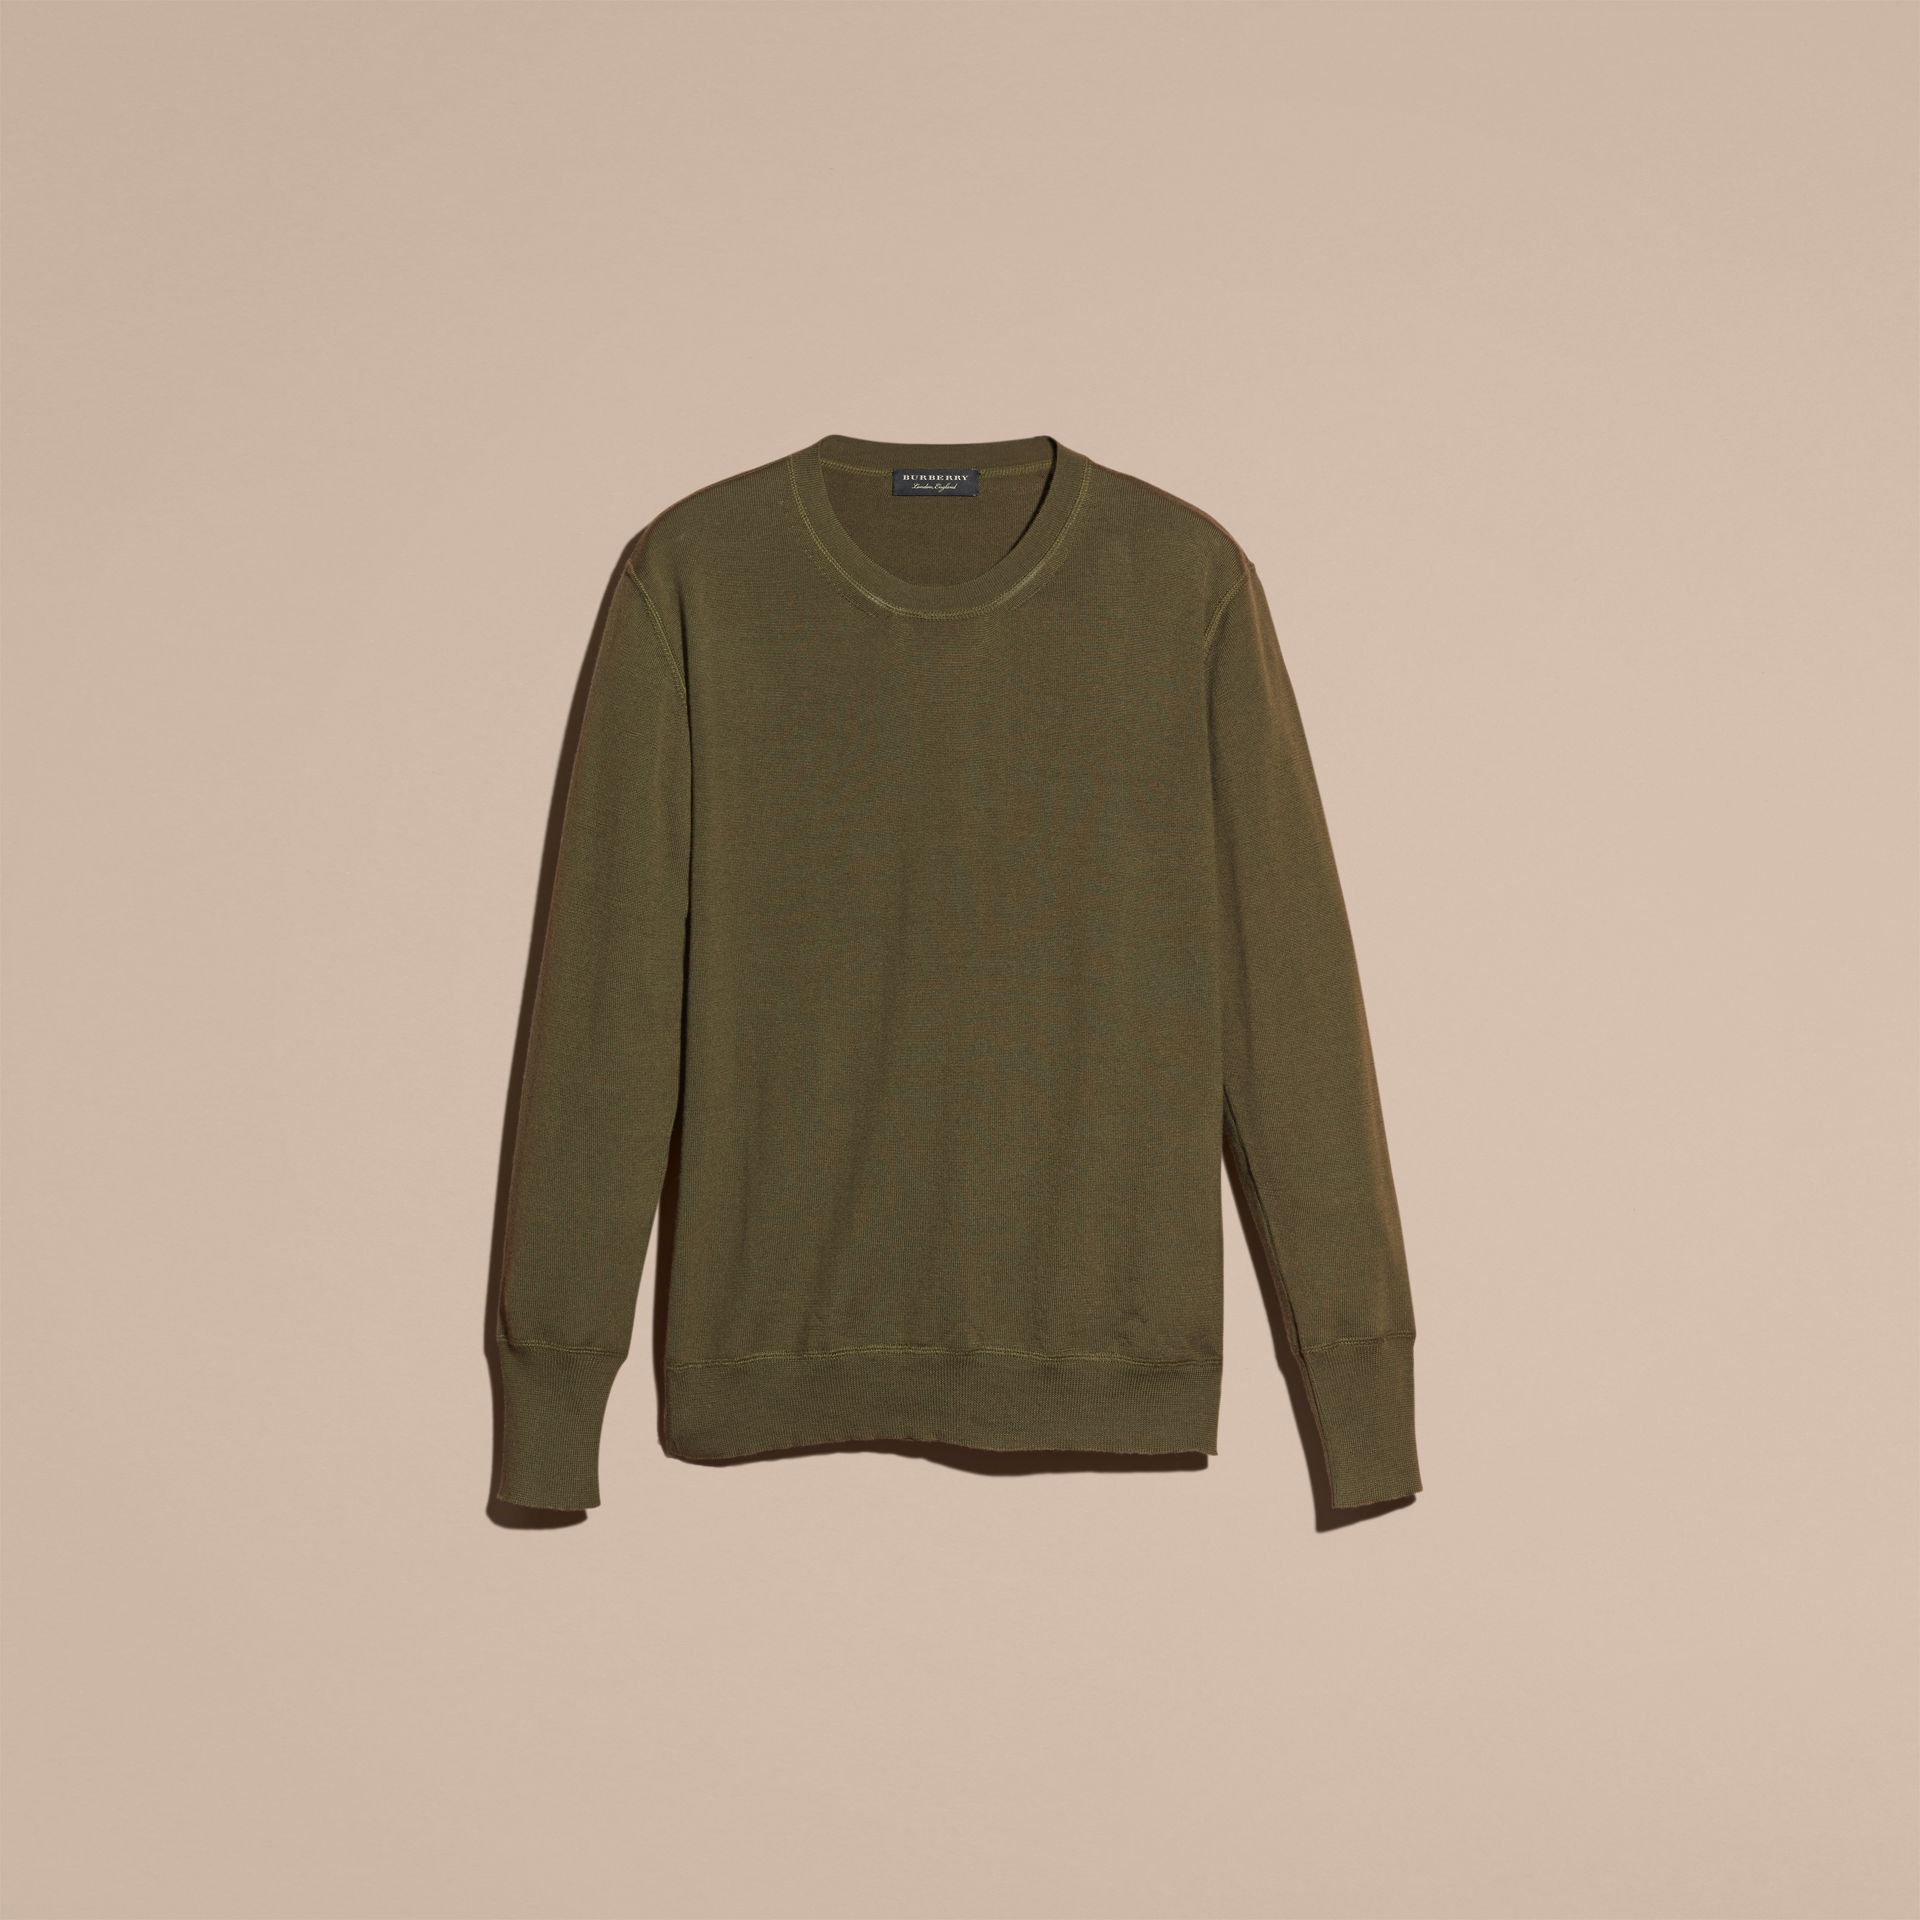 Military olive Crew Neck Cashmere Sweater Military Olive - gallery image 4